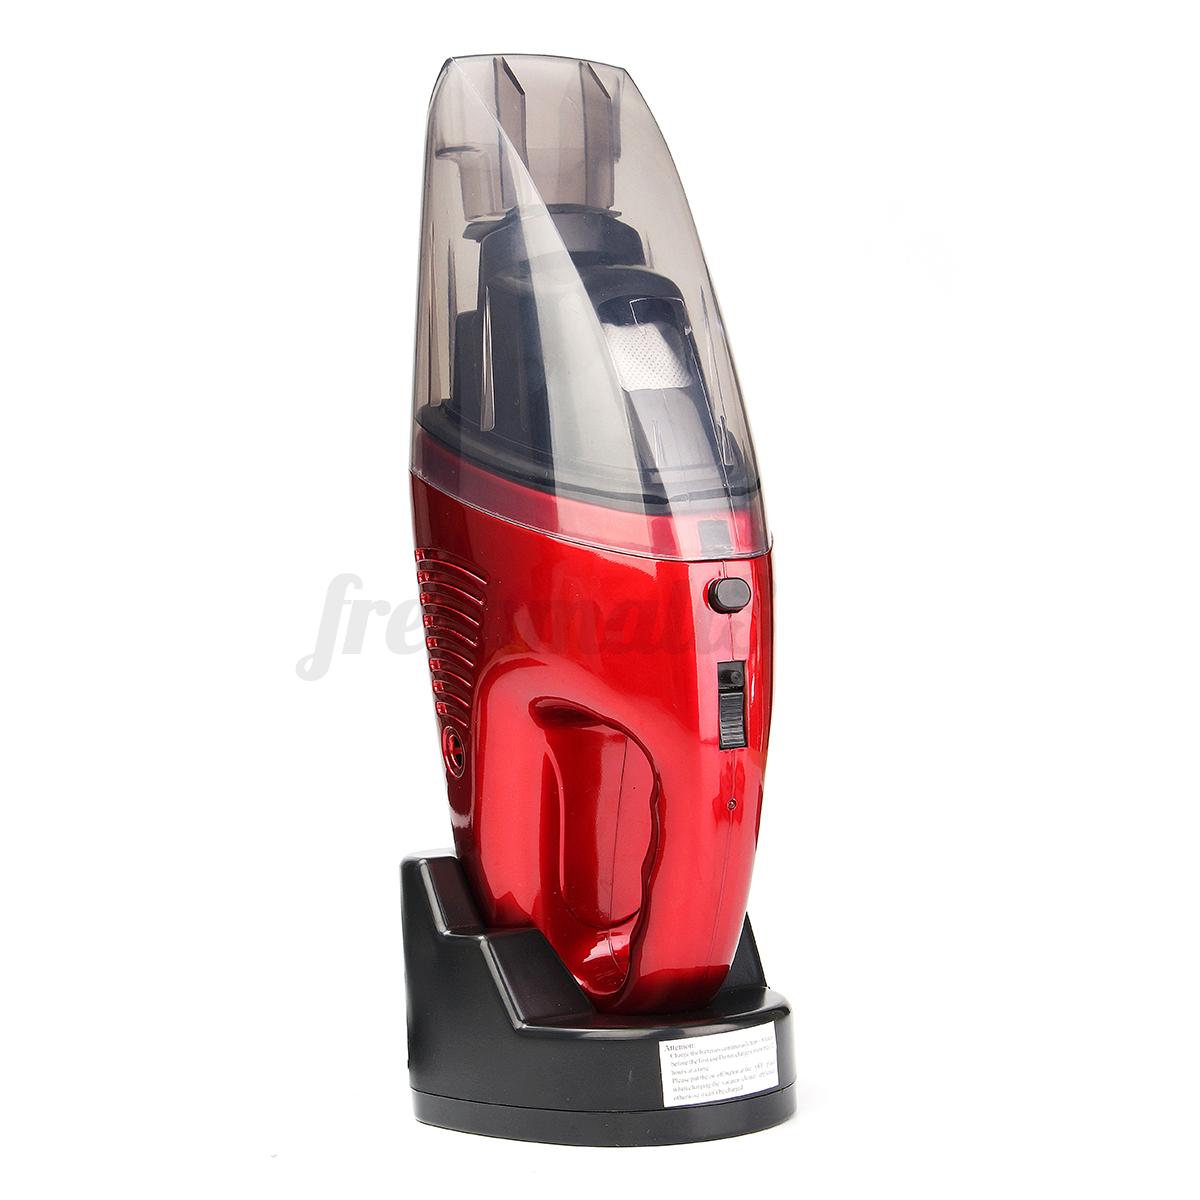 Led Powerful Compact Low Noise Cordless Wet Amp Dry Portable